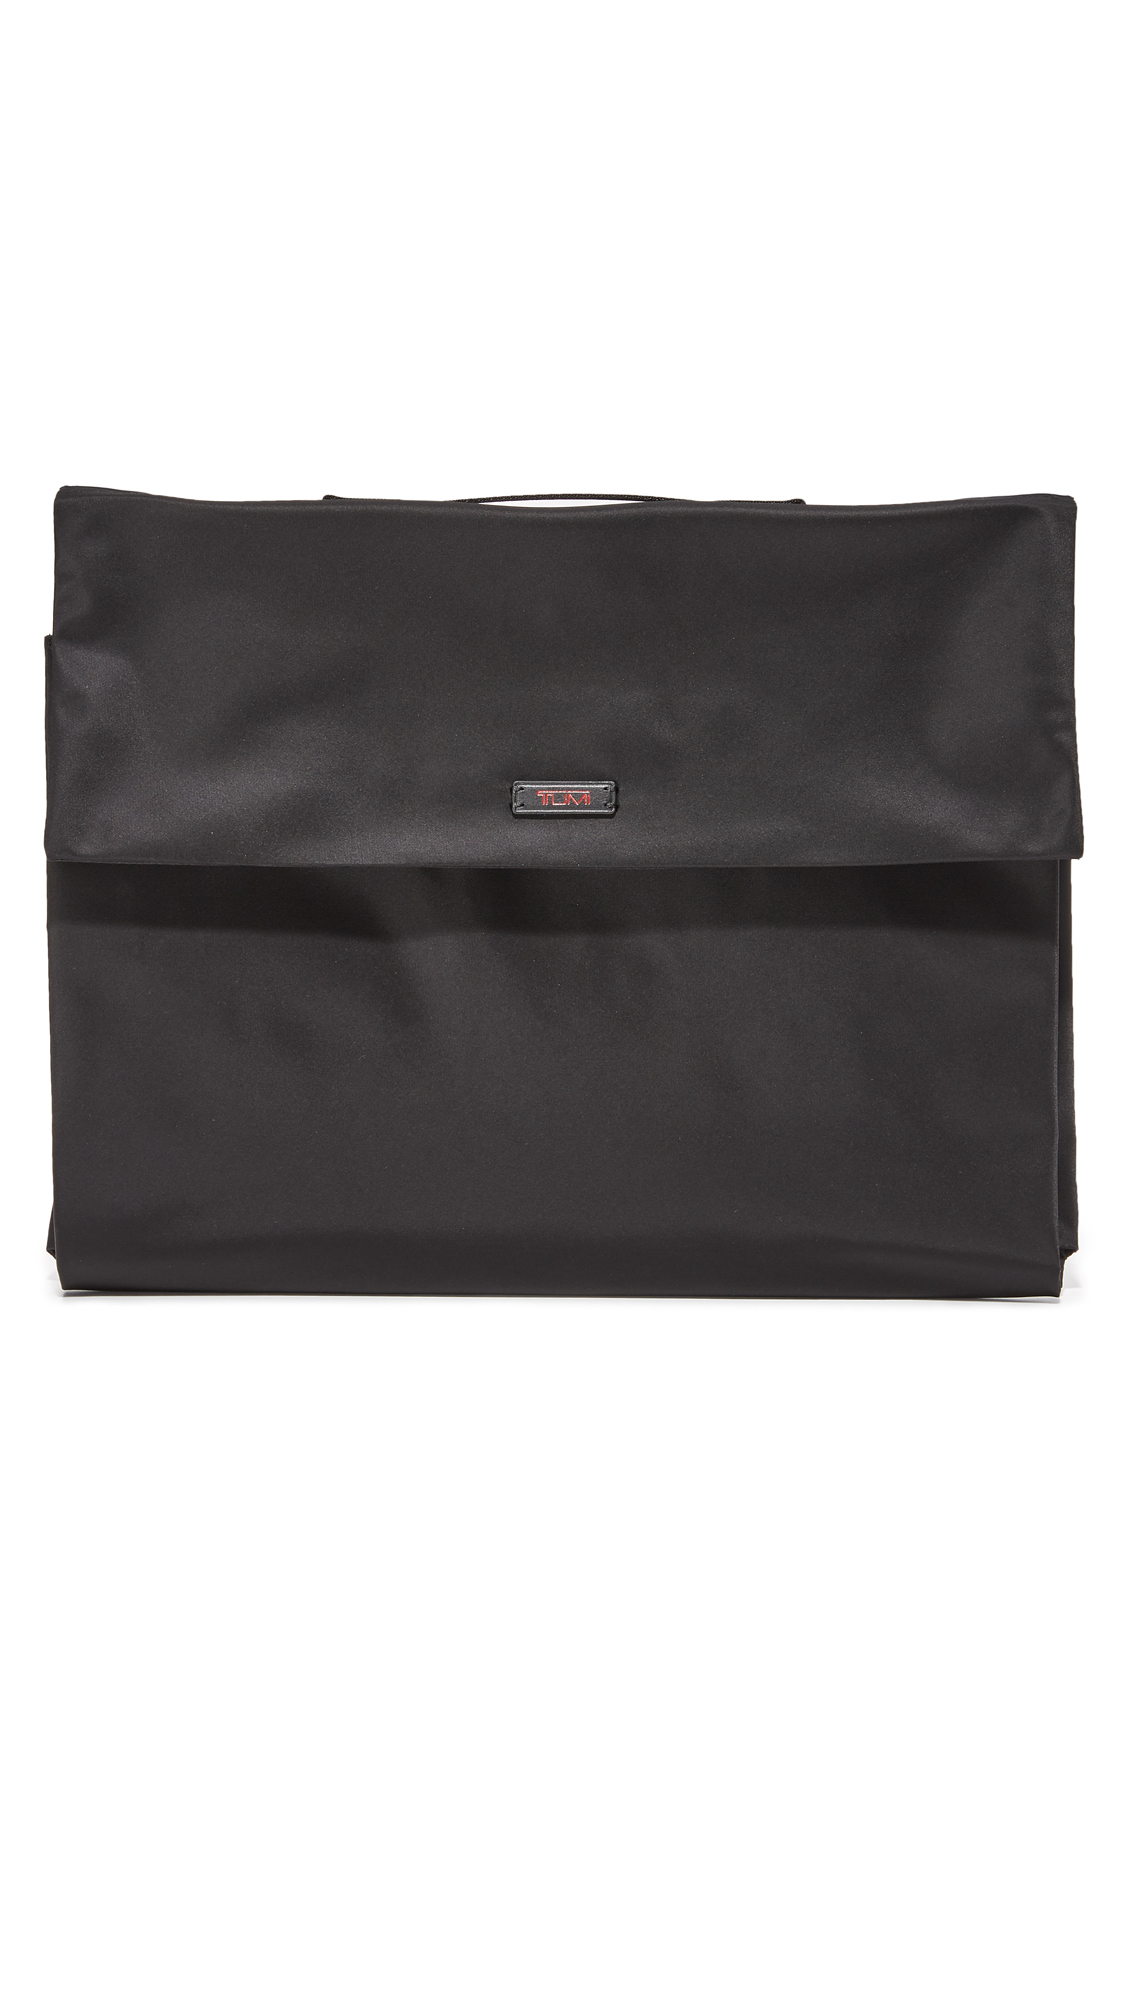 Tumi Medium Flat Folding Pack - Black